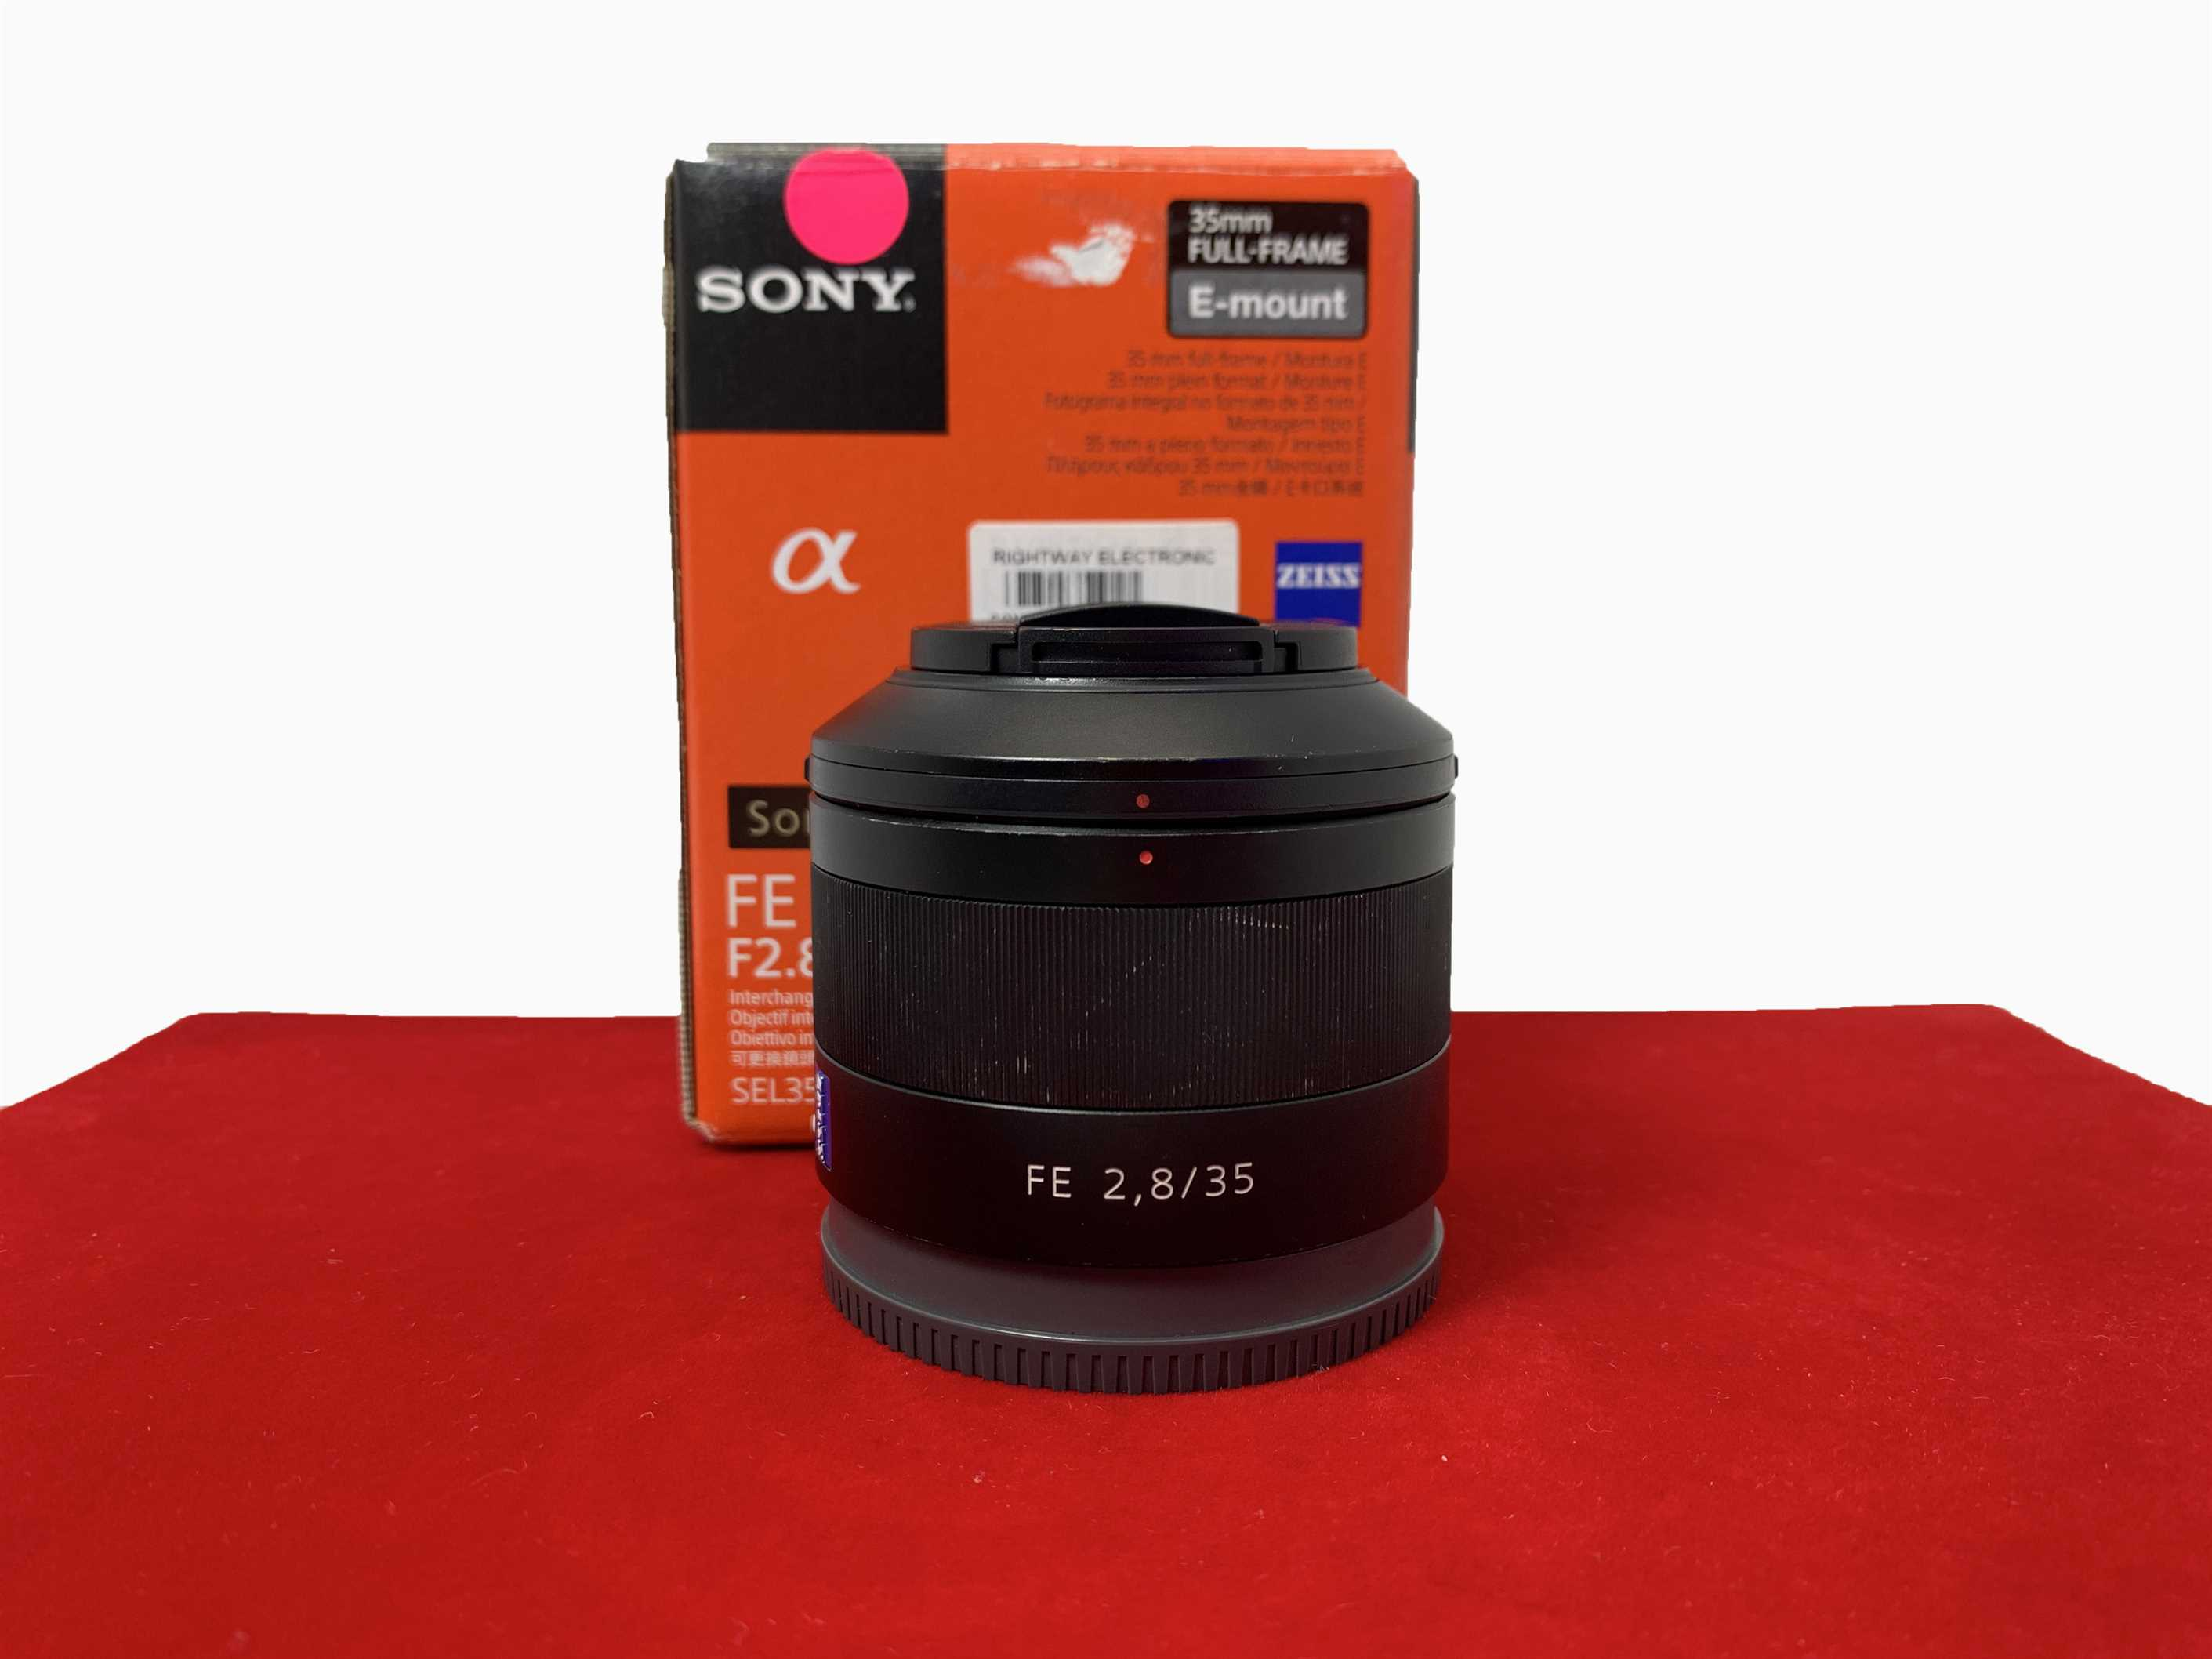 [USED-PJ33] Sony 35mm F2.8 ZA FE Lens,80% Like New Condition (S/N:1821739)